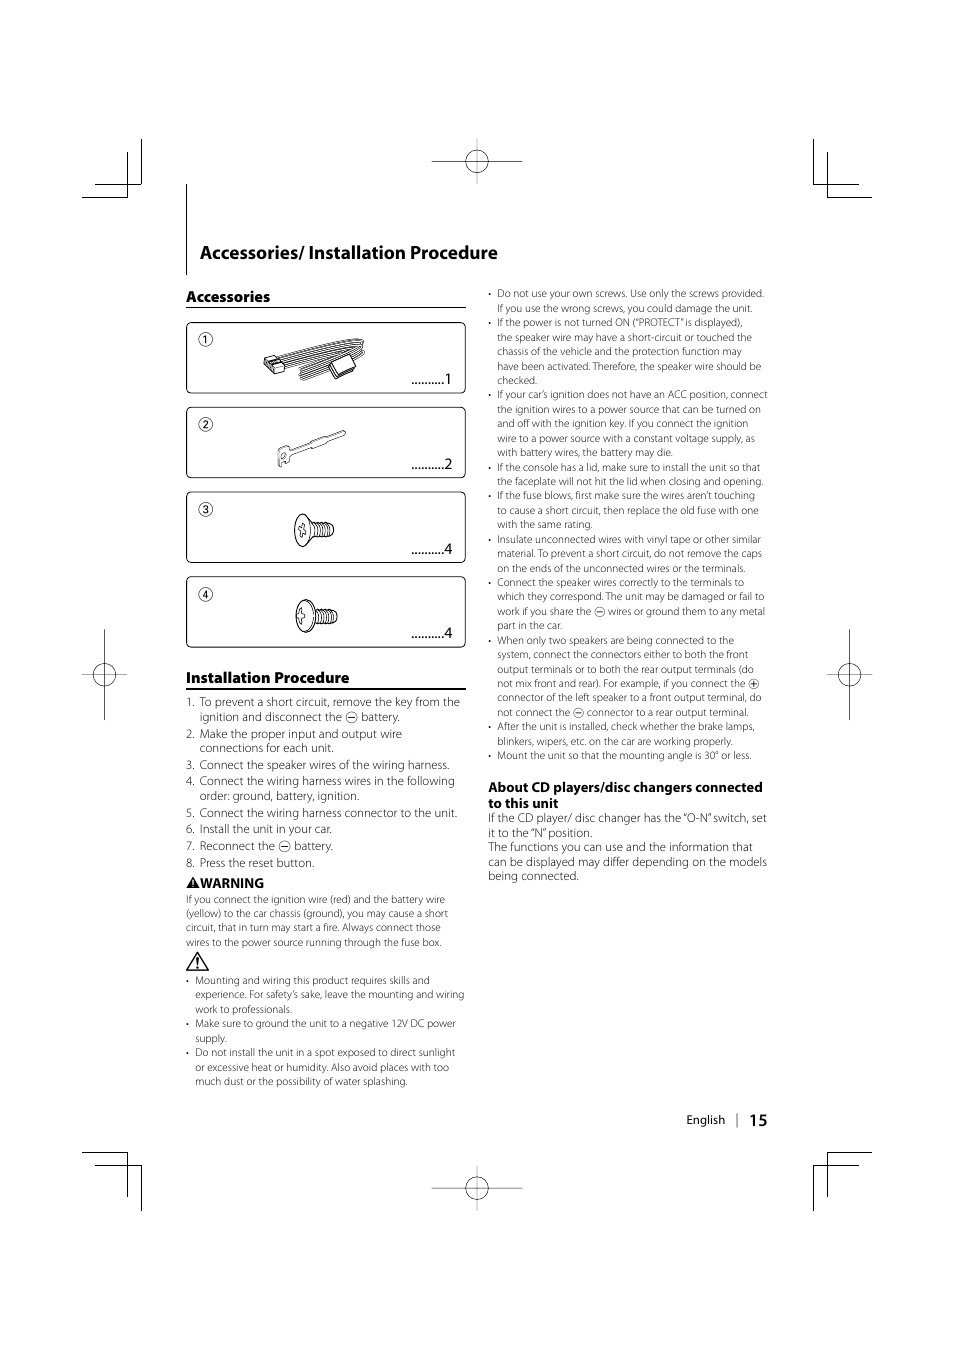 hight resolution of accessories installation procedure kenwood kdc mp142 user manual page 15 56